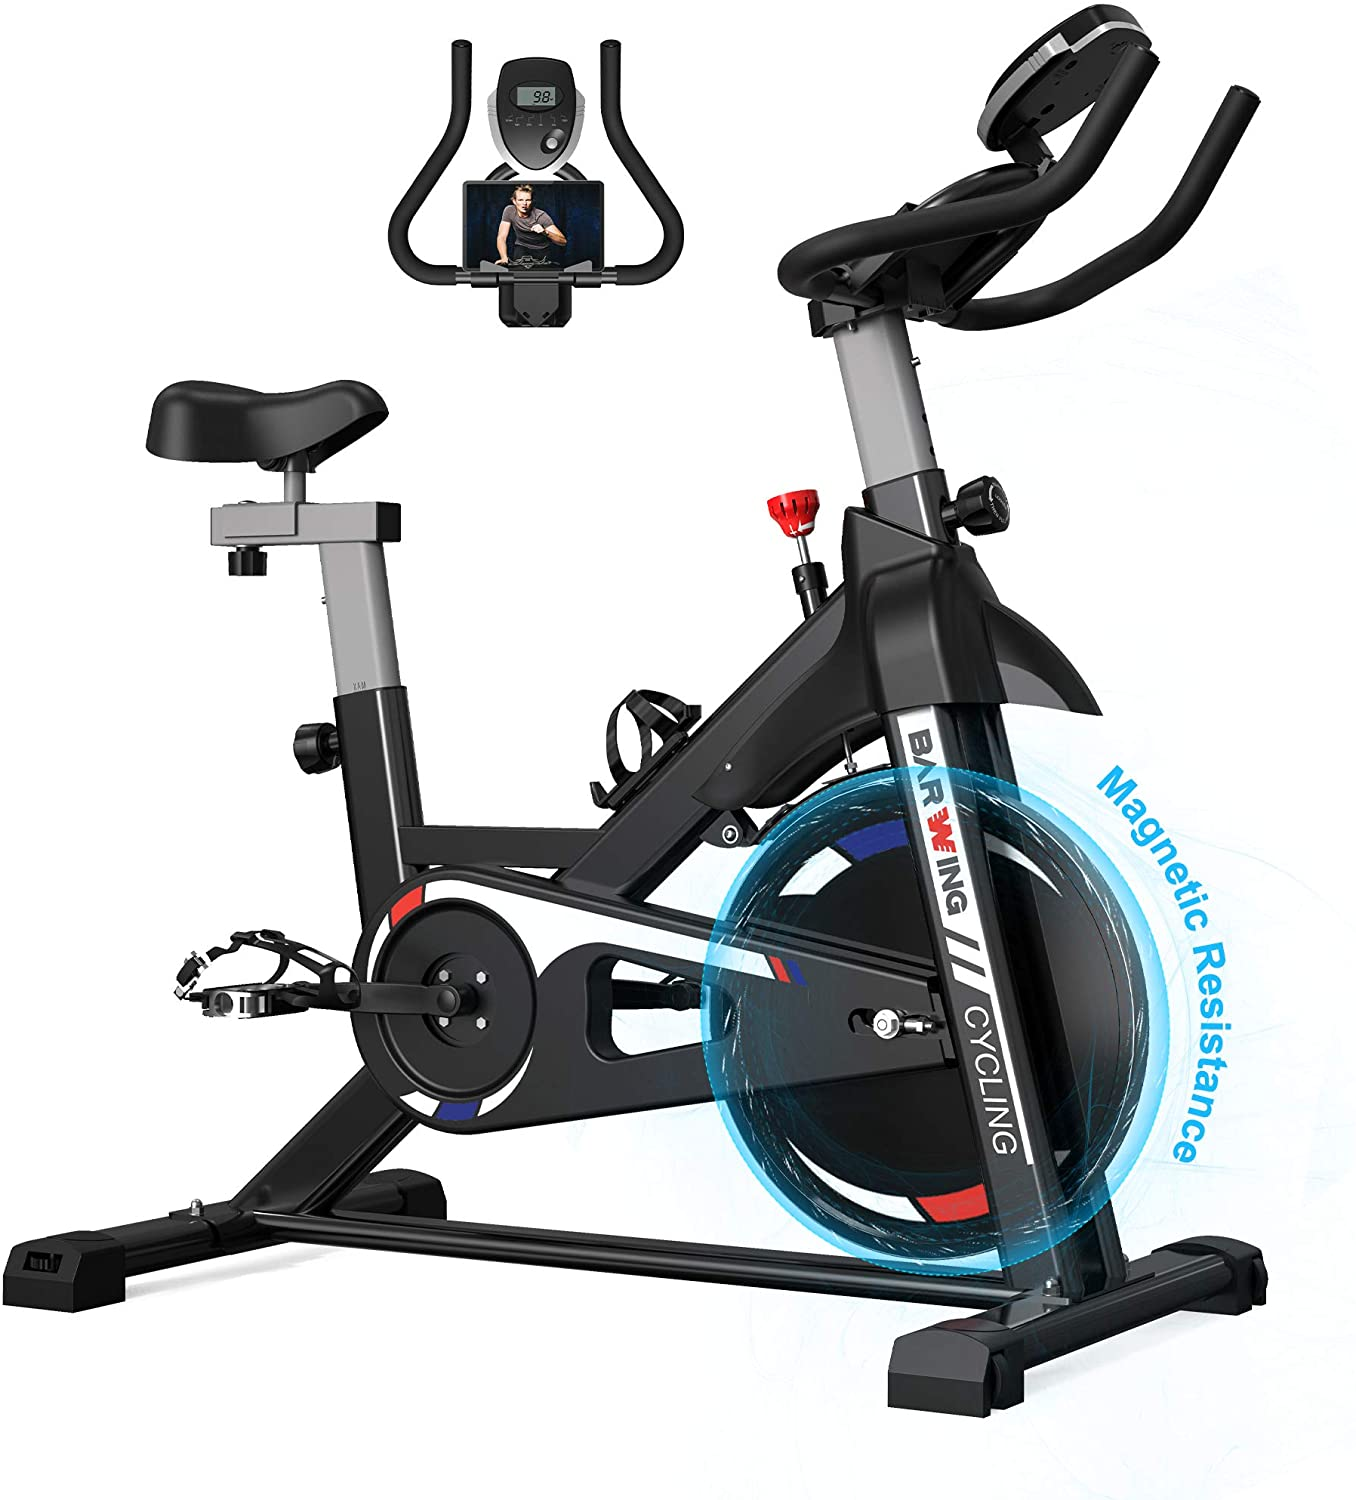 BARWING Magnetic Resistance Exercise Bike